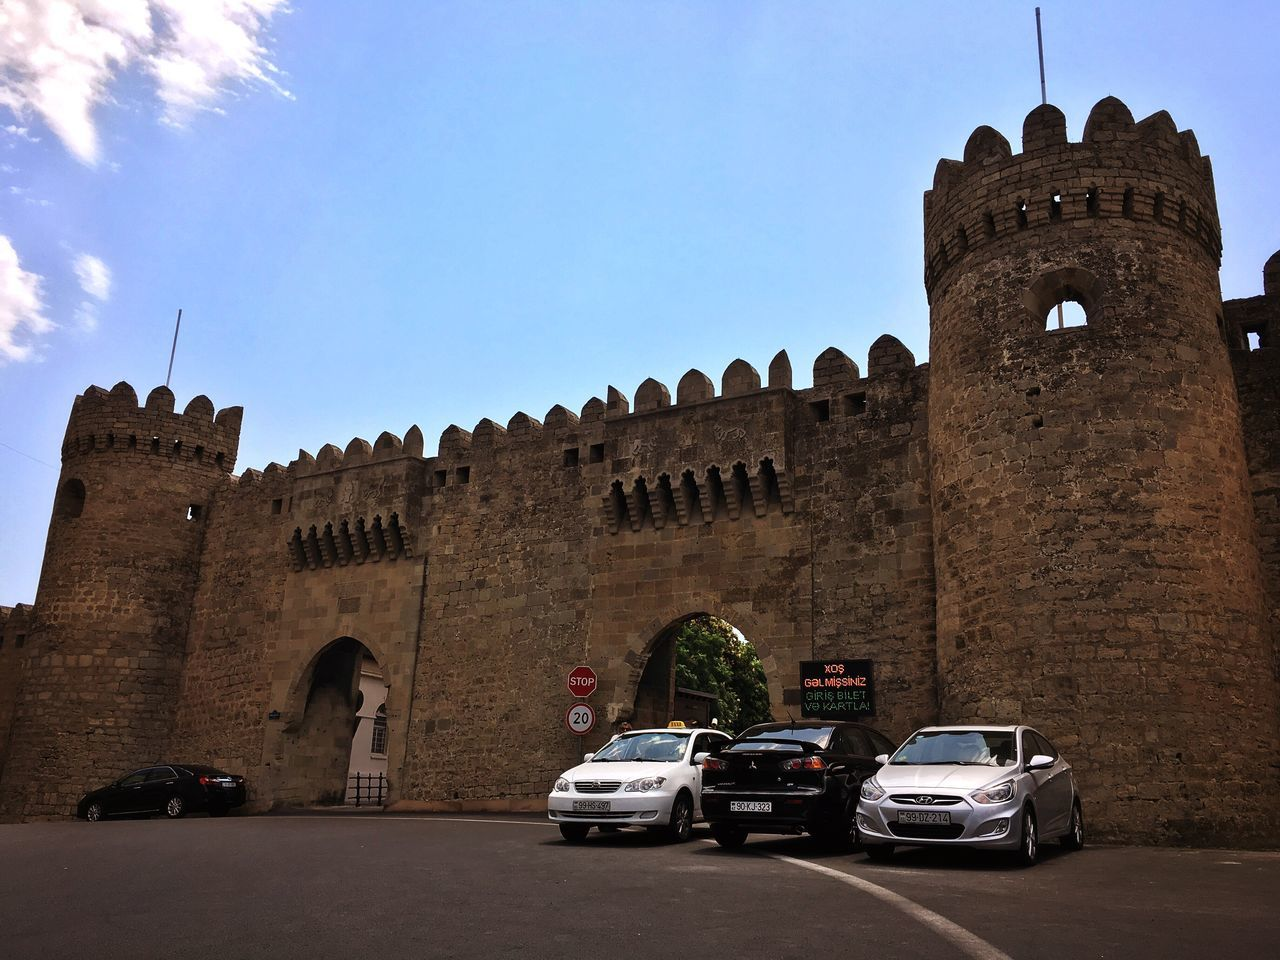 Cars are parked near the double gate of Baku's Old City, Incherisheher in Azerbaijan Historical Building Baku Azerbaijan Traveling Building Architecture